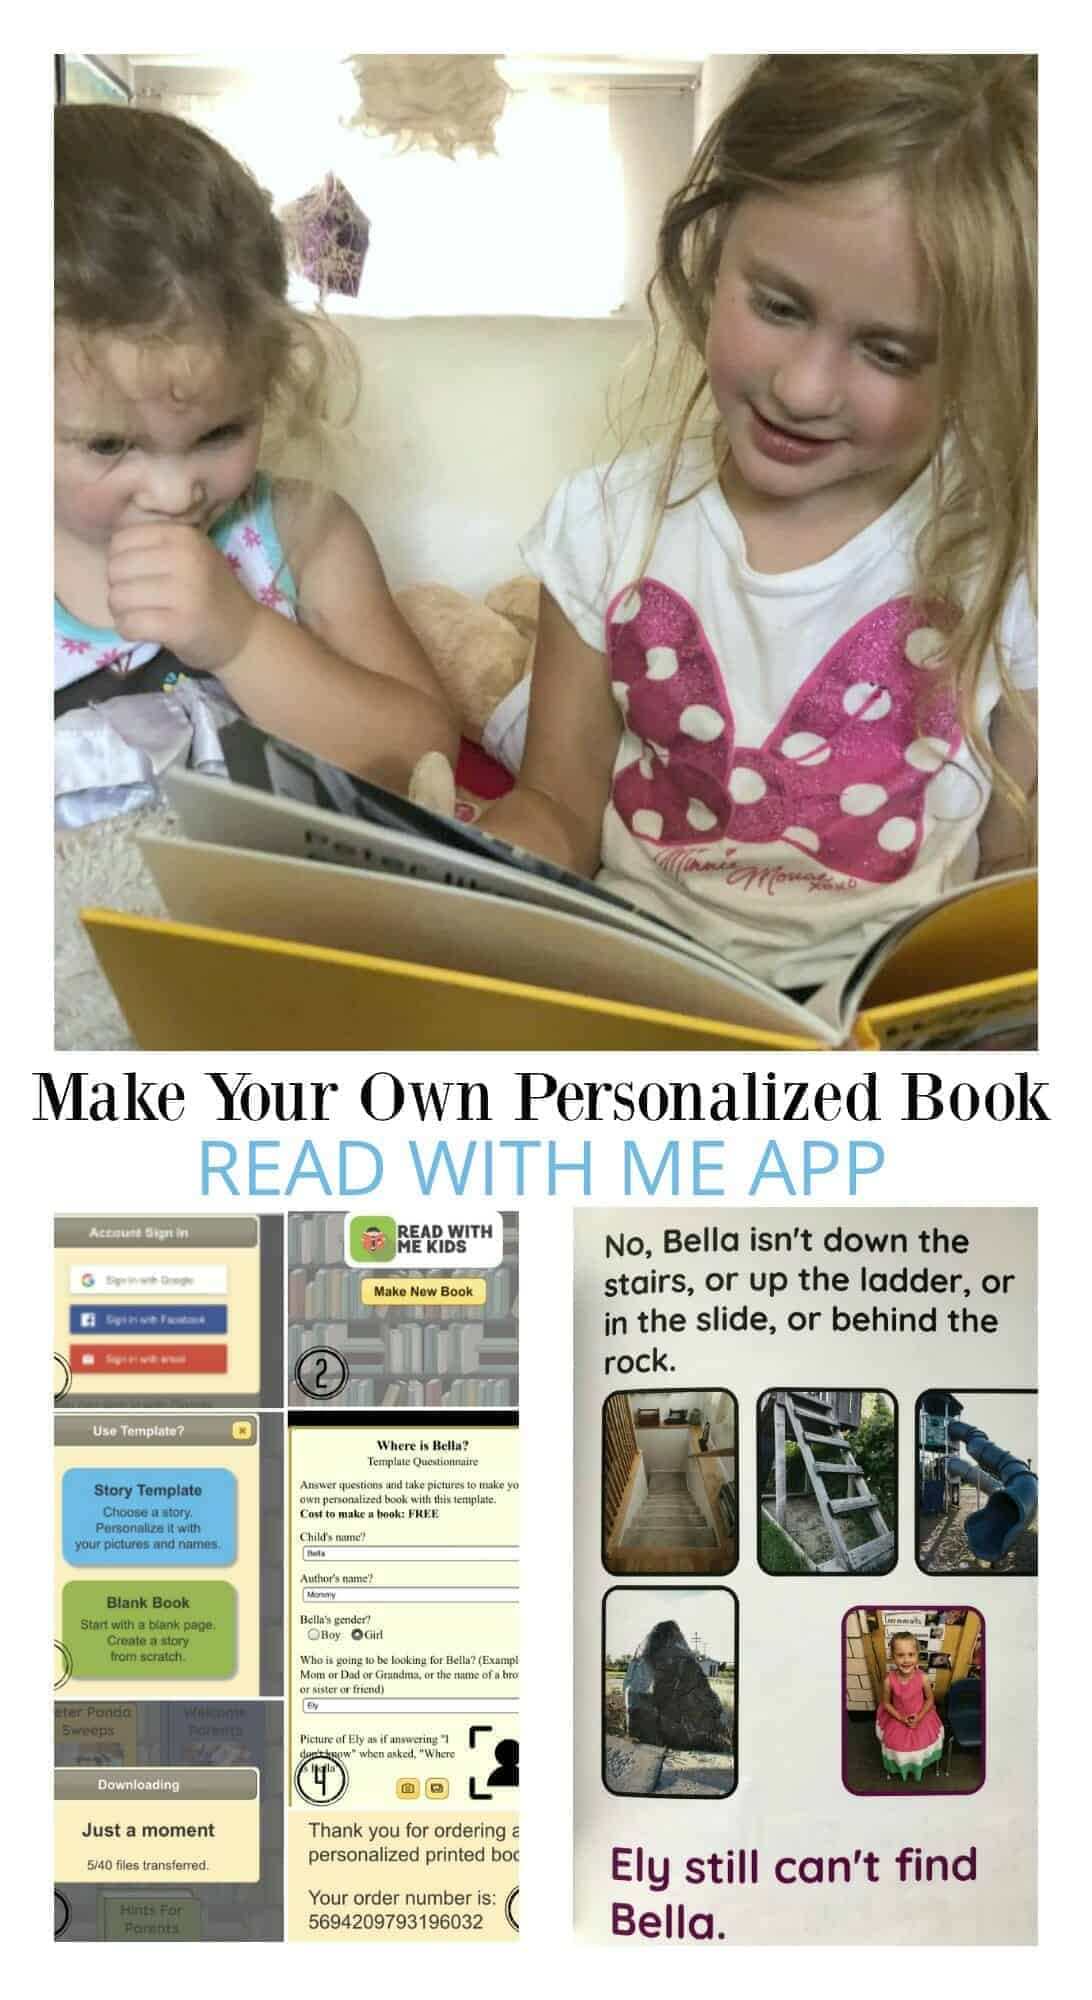 Make your own personalized book with Read With Me app